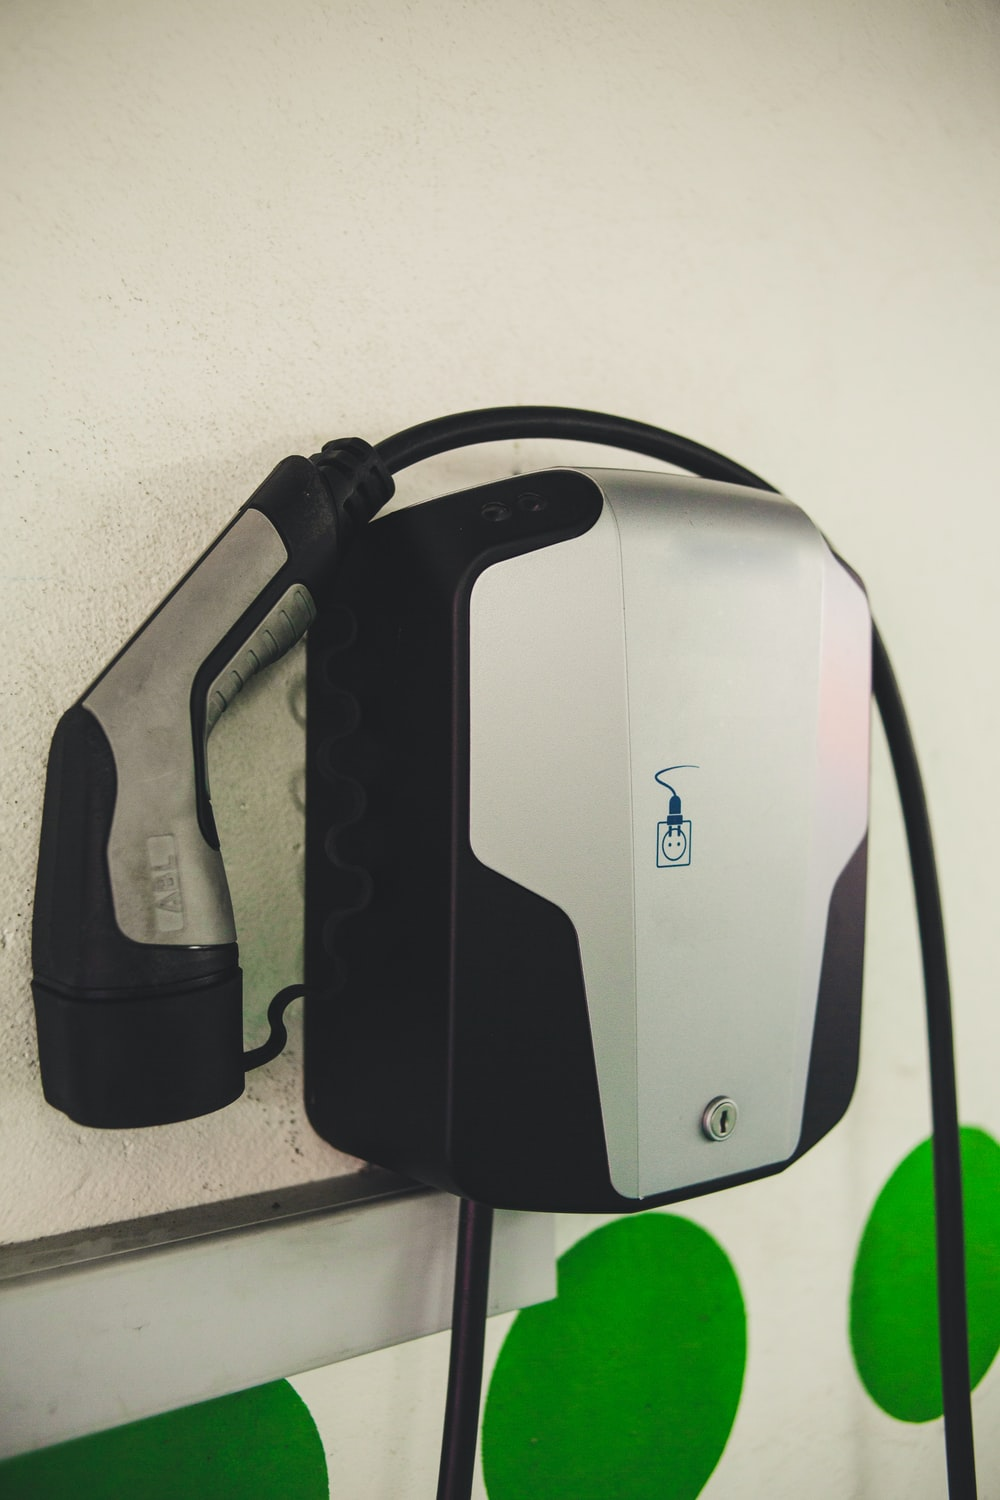 square black and white corded device